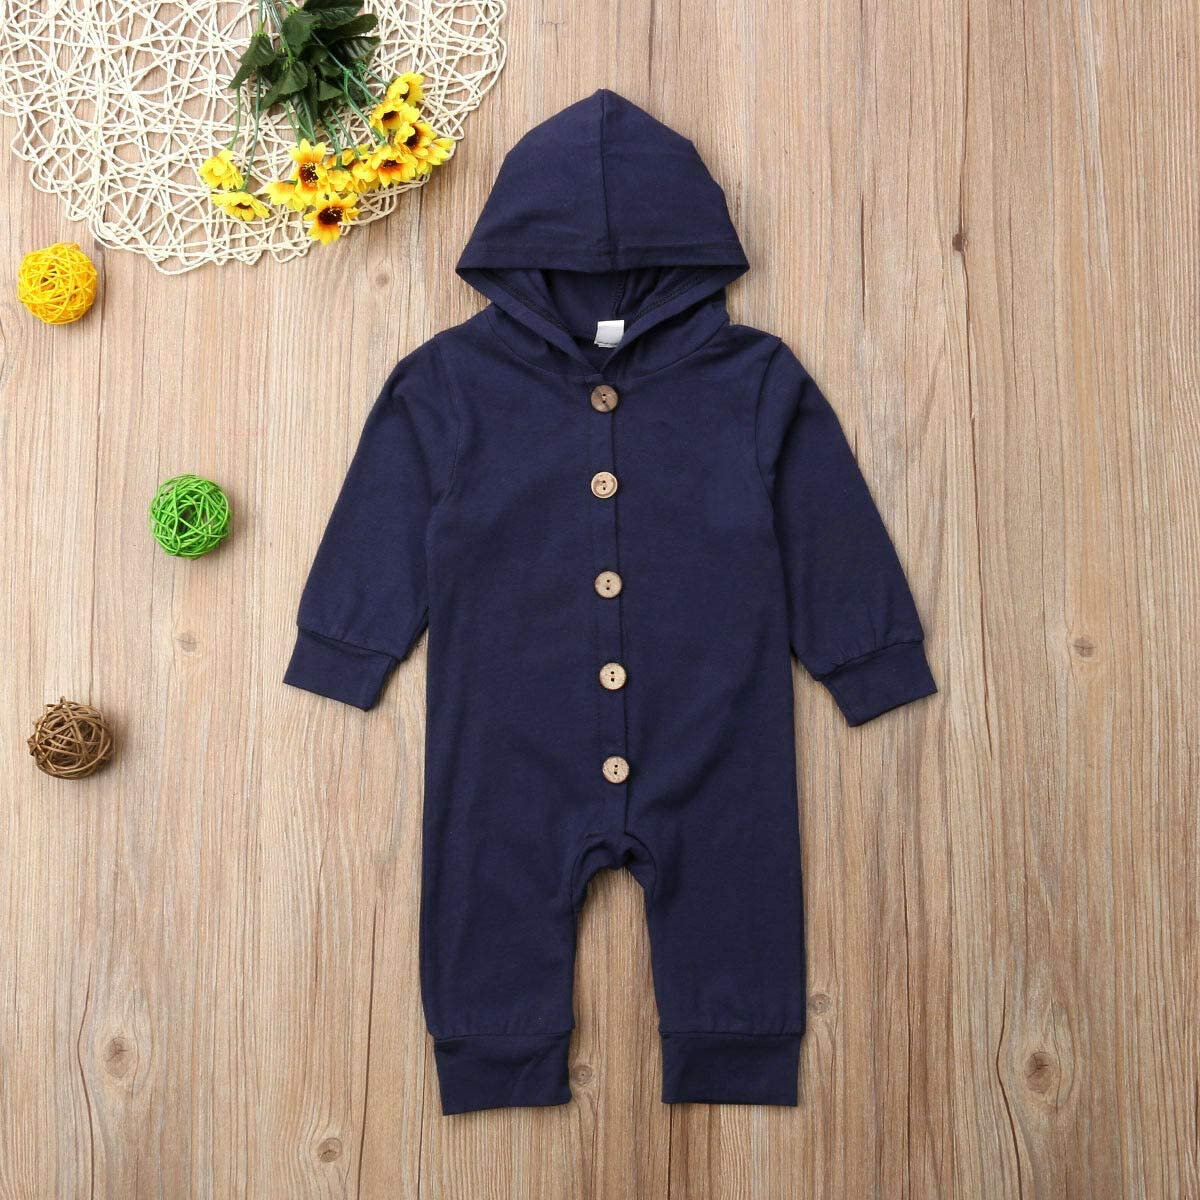 MA/&BABY Baby Hooded Romper Newborn Boy Girl Long Sleeve Button Jumpsuit Bodysuit Clothes Outfits